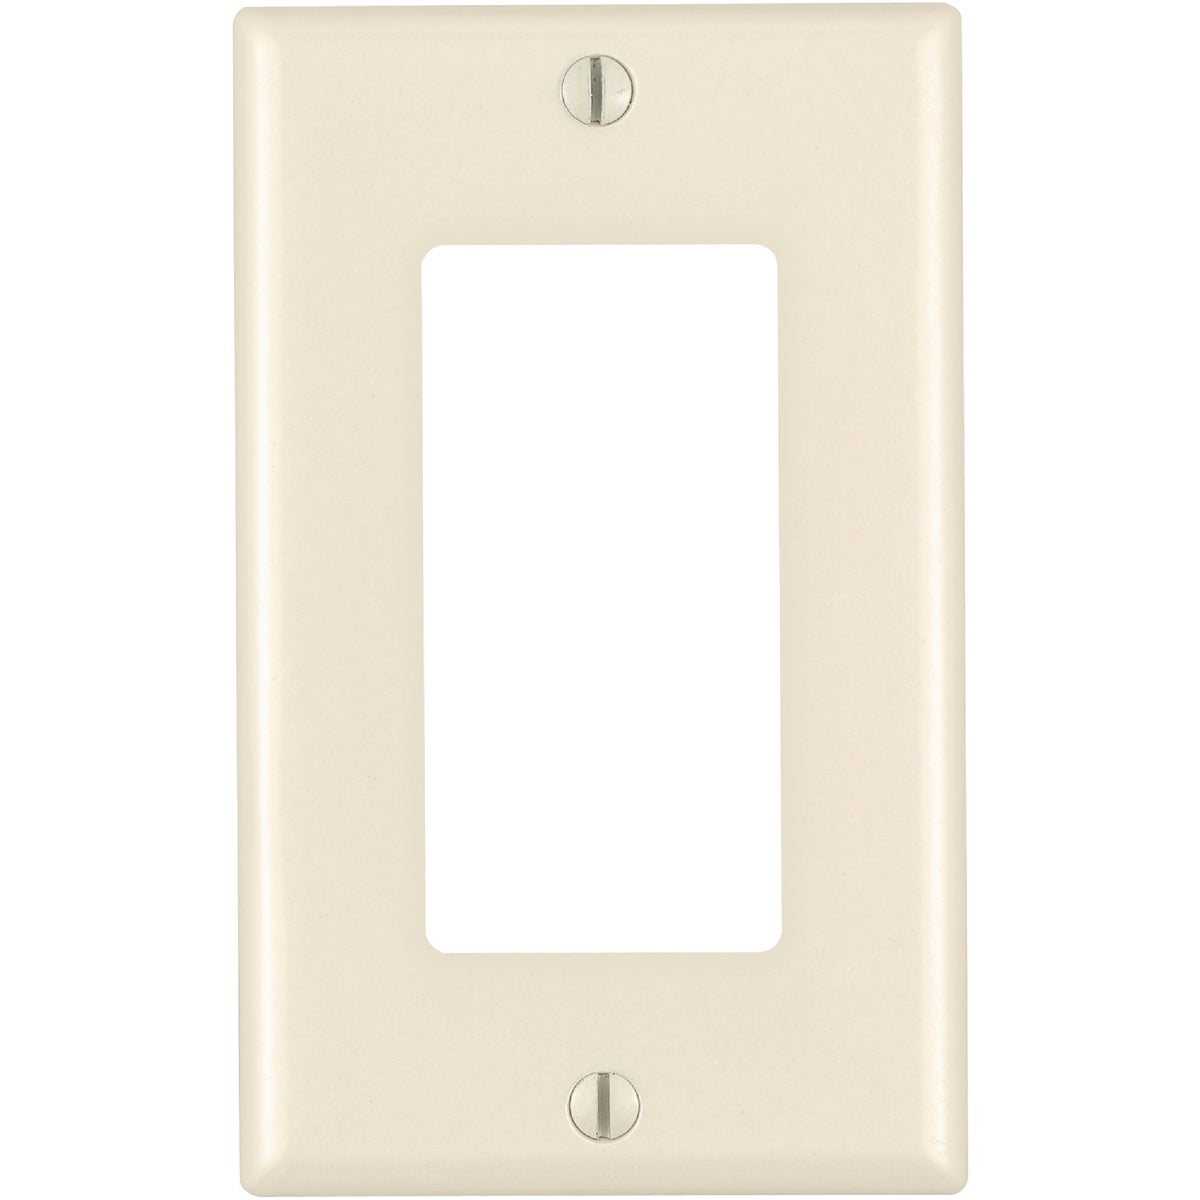 LT ALM 10PK RCKR WALLPLT - M26-80401-TMP by Leviton Mfg Co